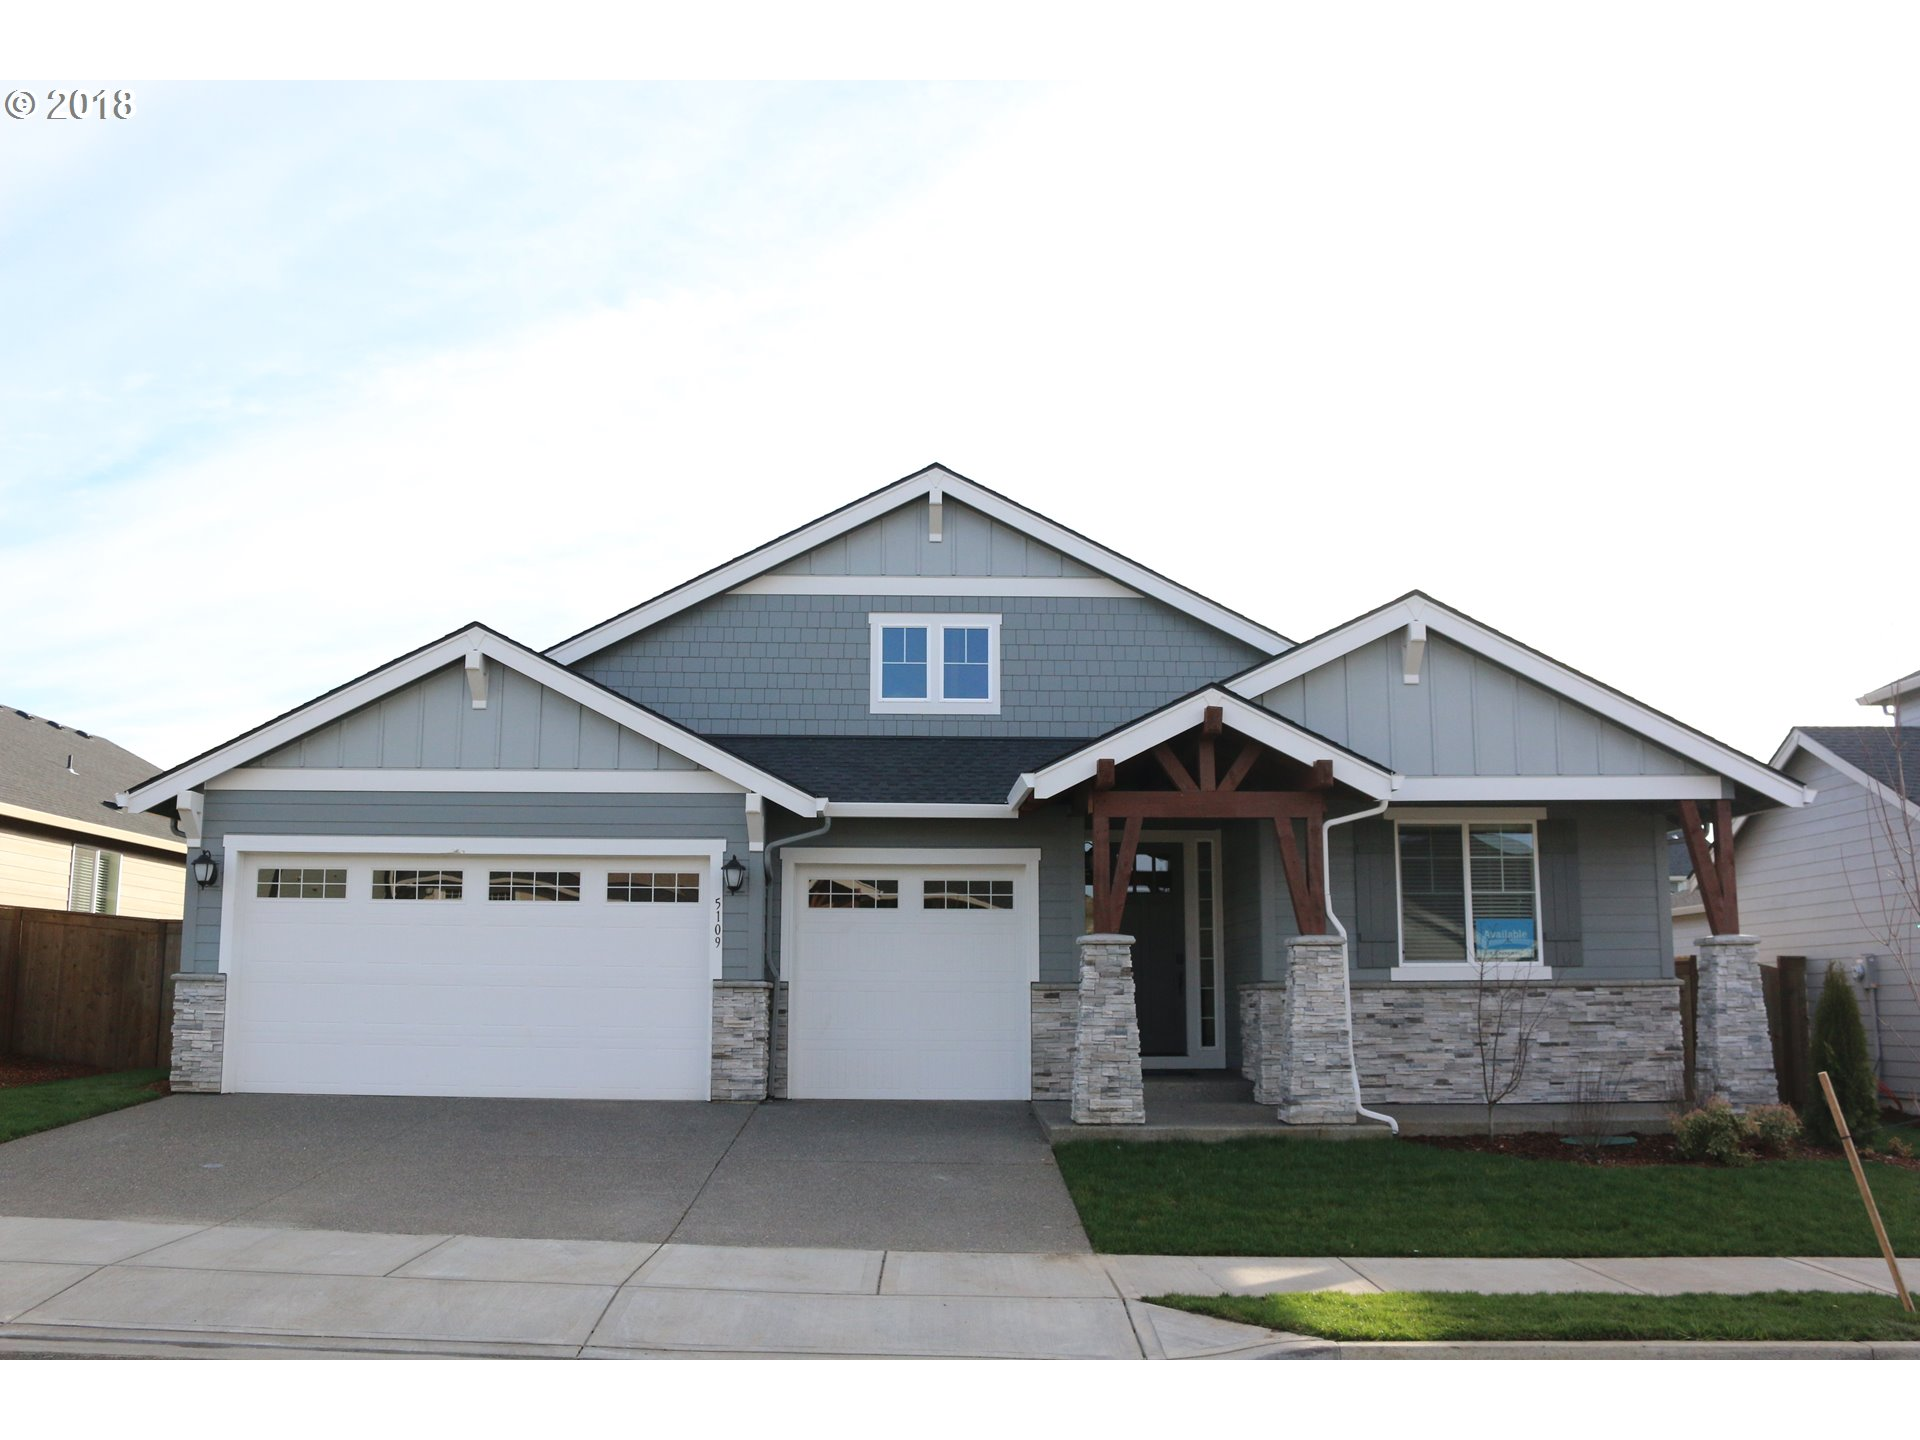 5109 NW 138th St, Vancouver, WA 98685